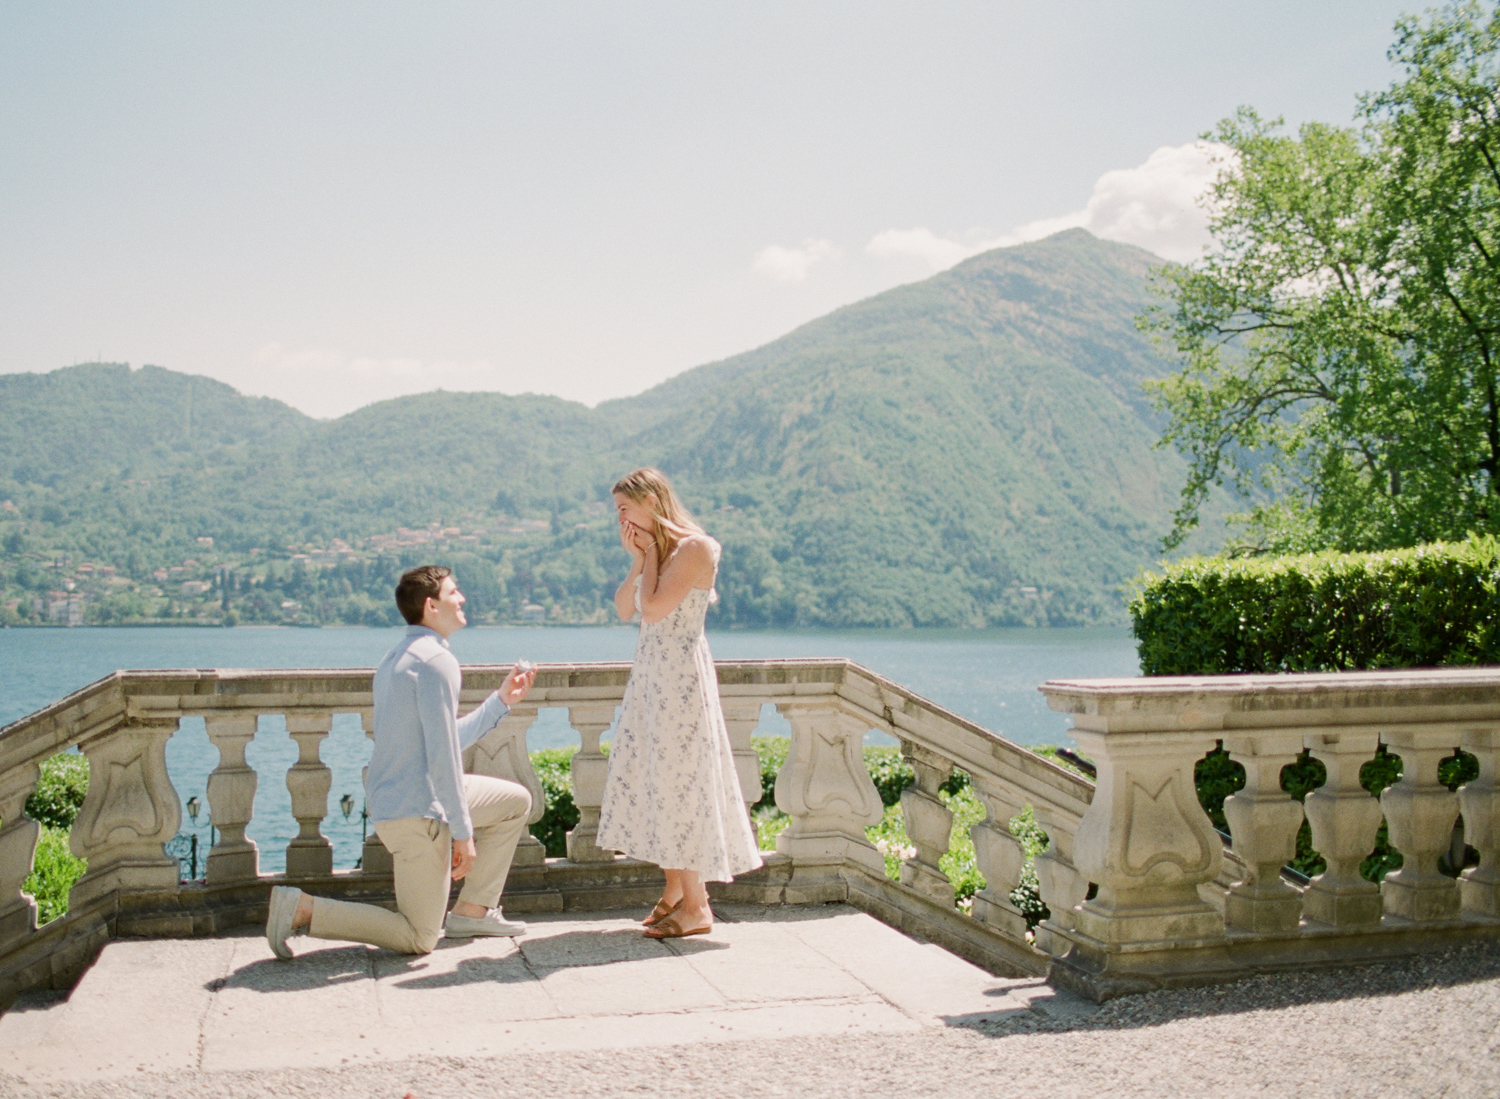 lake como film wedding photographer italy wedding photographer nikol bodnarova photography 16.JPG